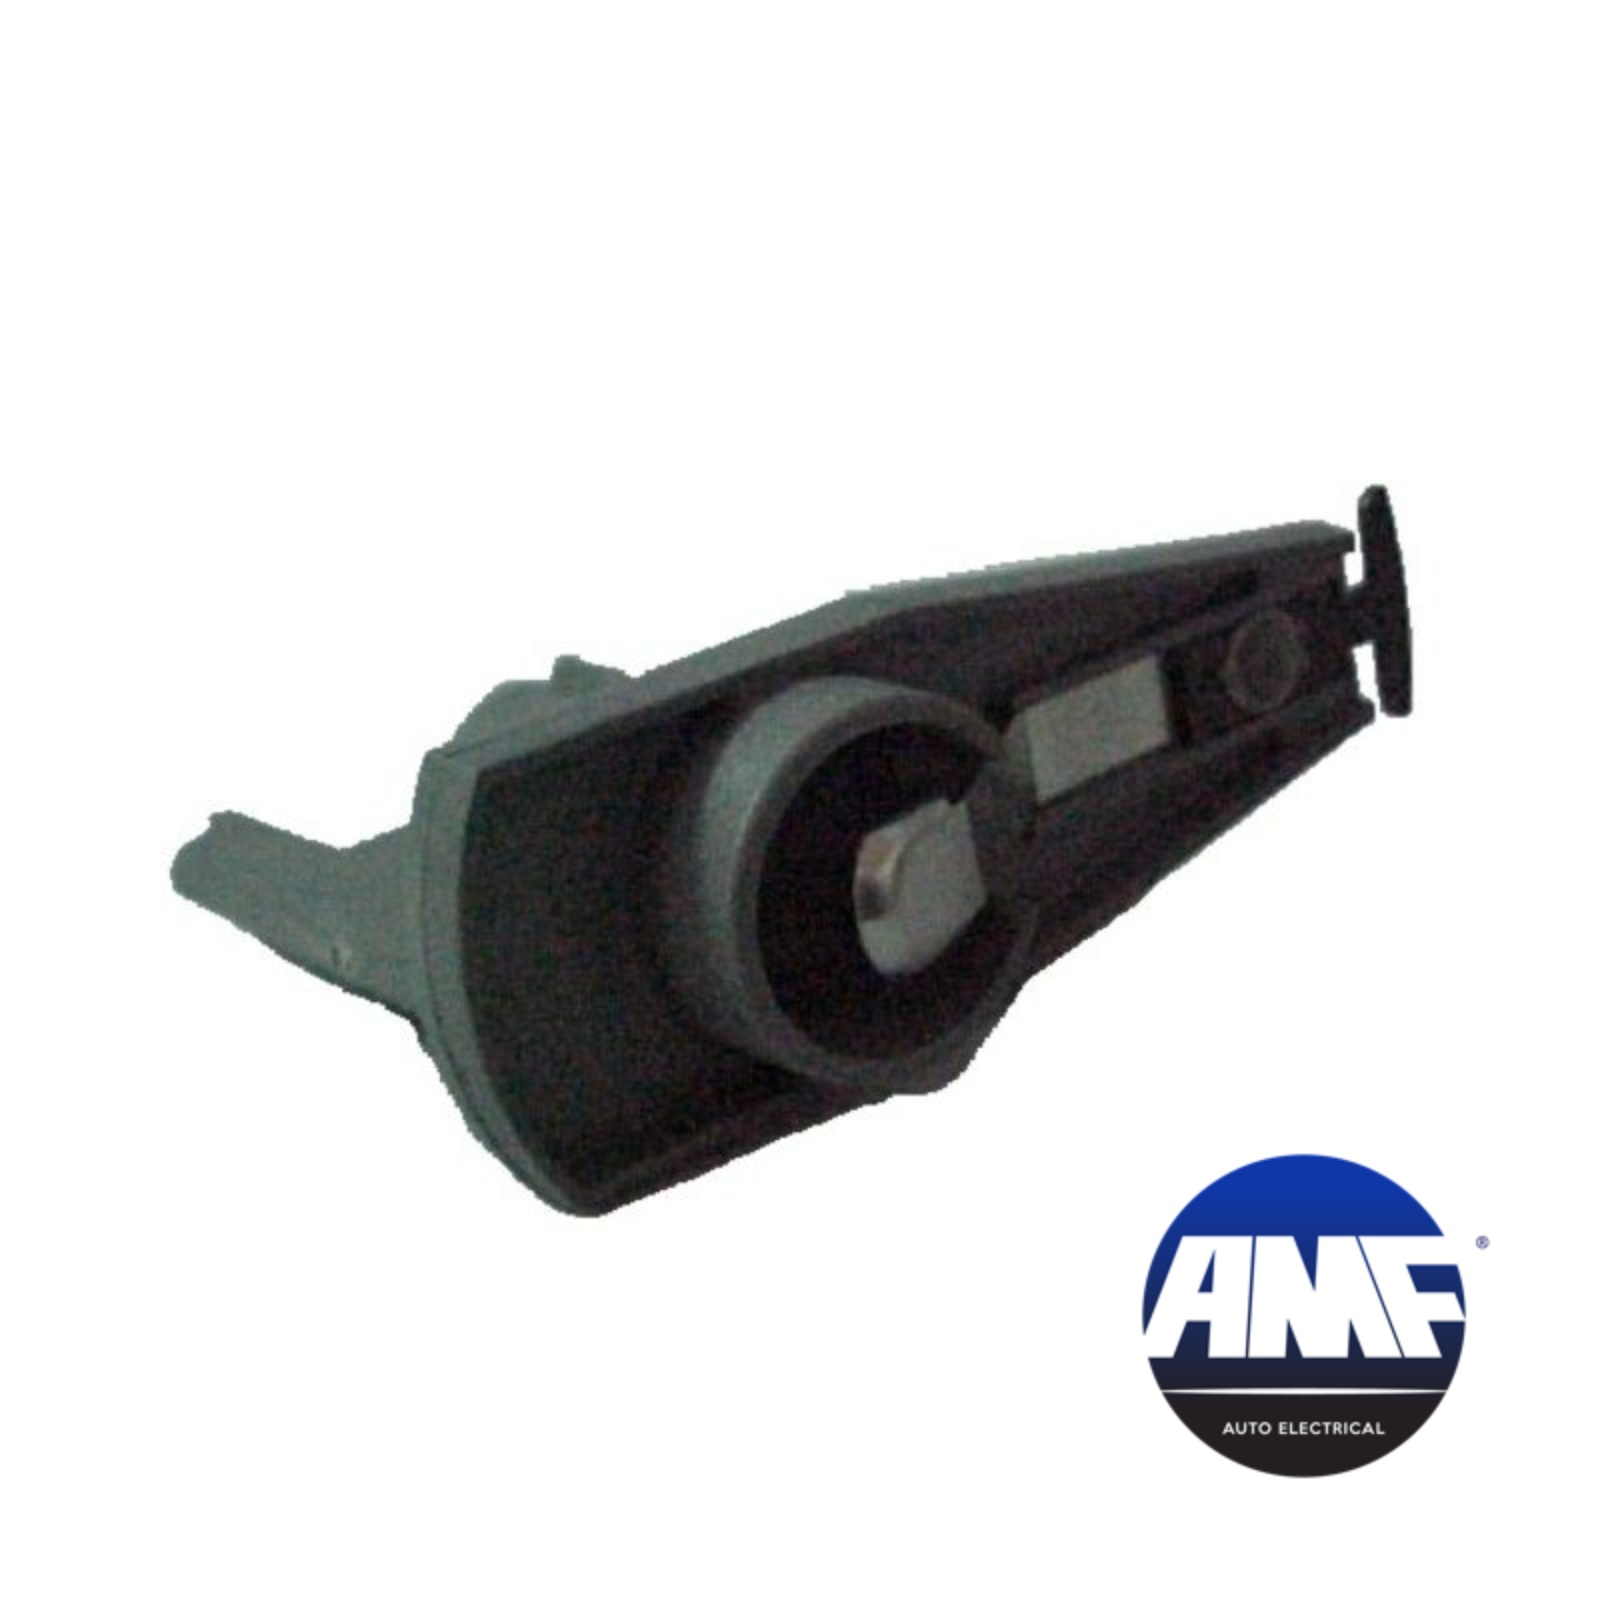 New Distributor Rotor for Ford - FD307